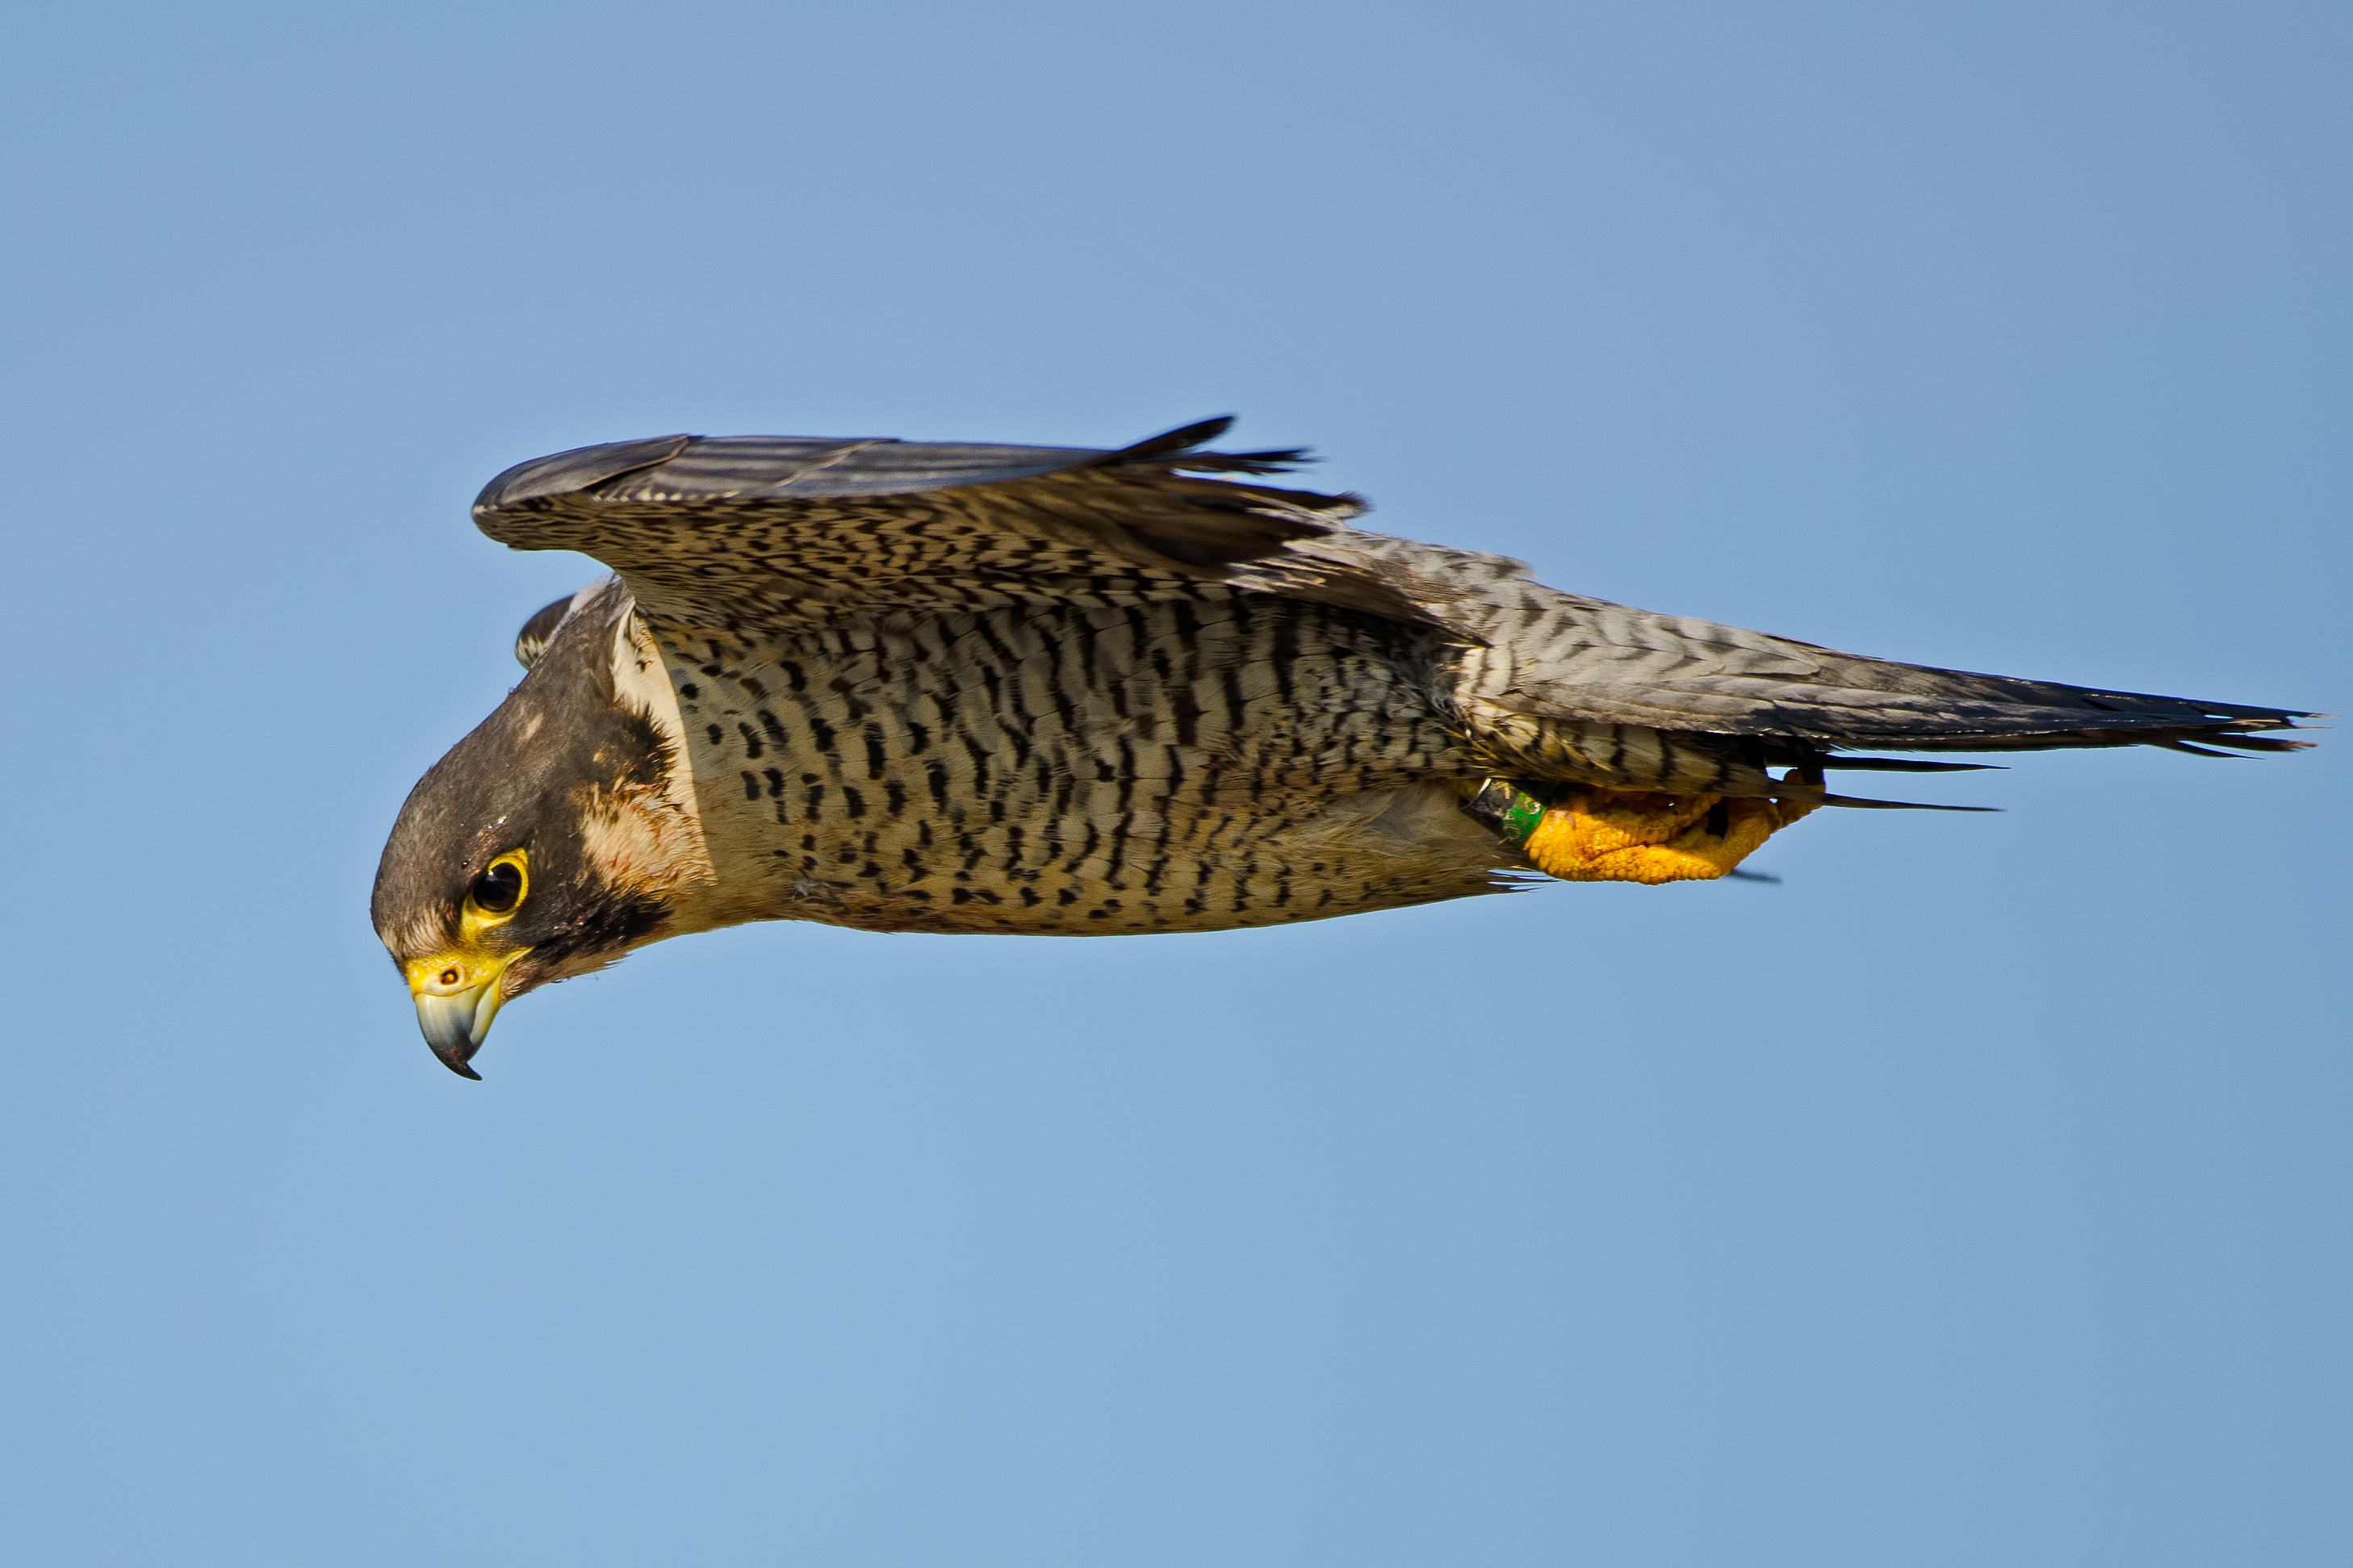 Replicating peregrine attack strategies could help down rogue drones